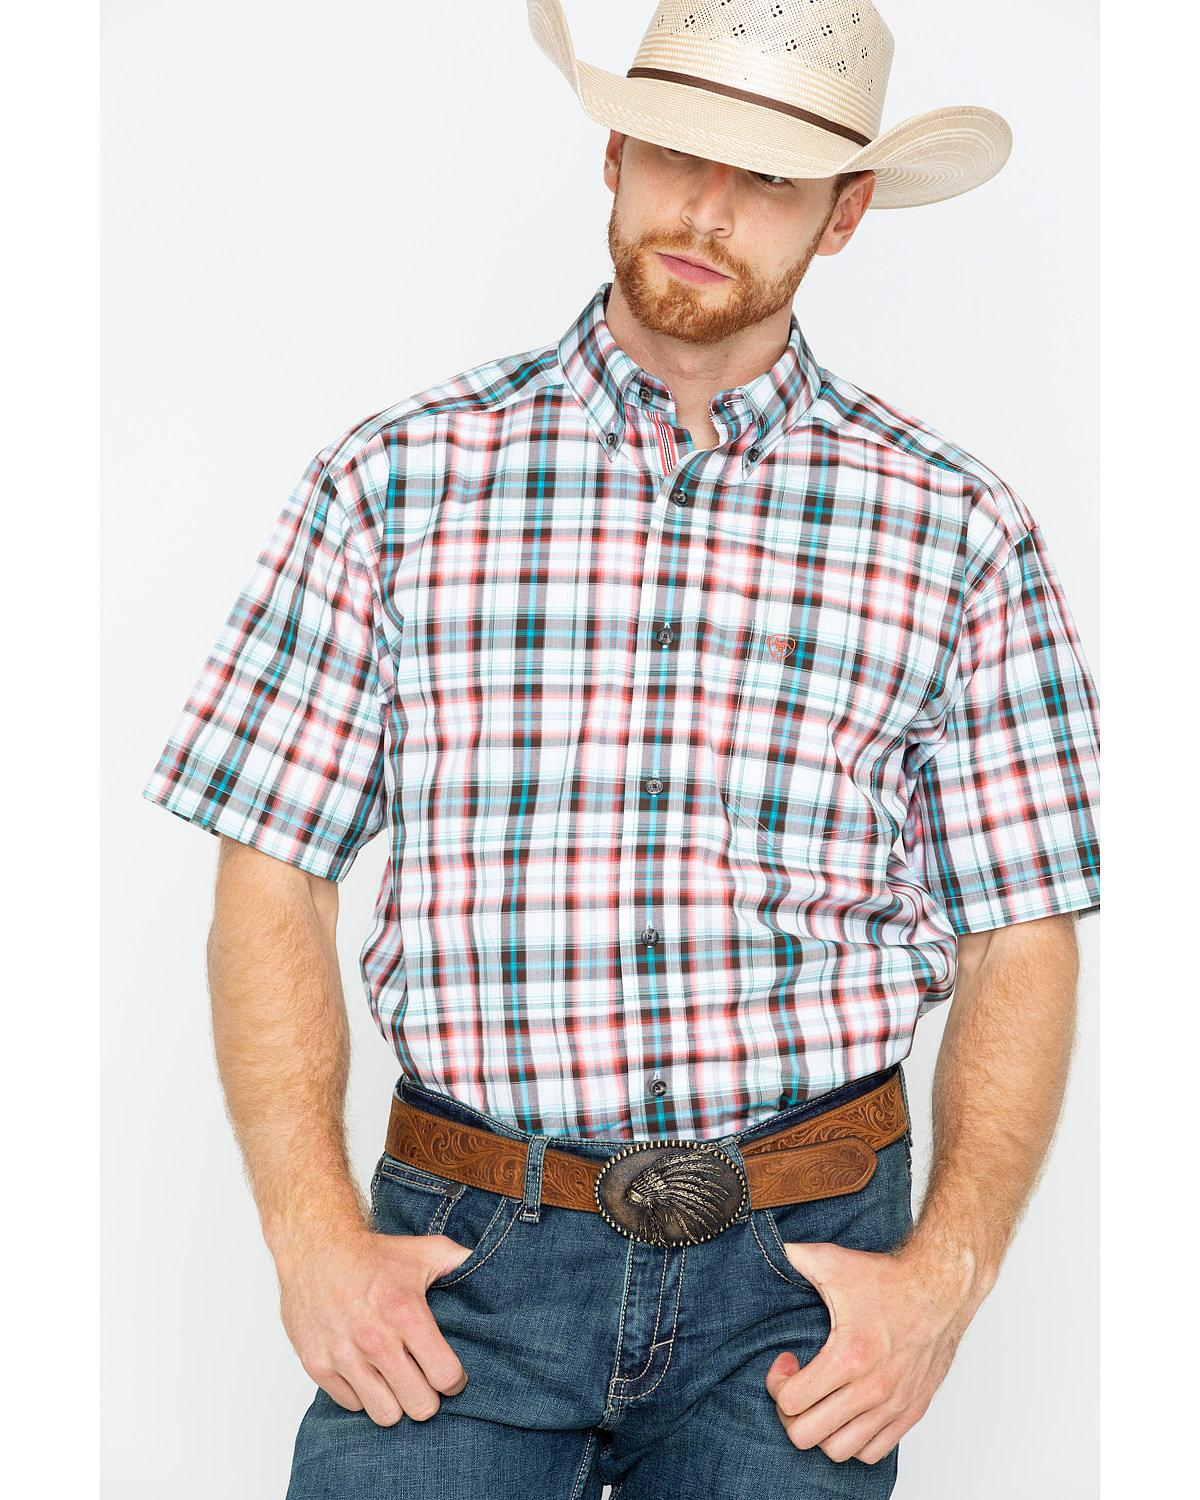 Men's Short Sleeve Country Shirts